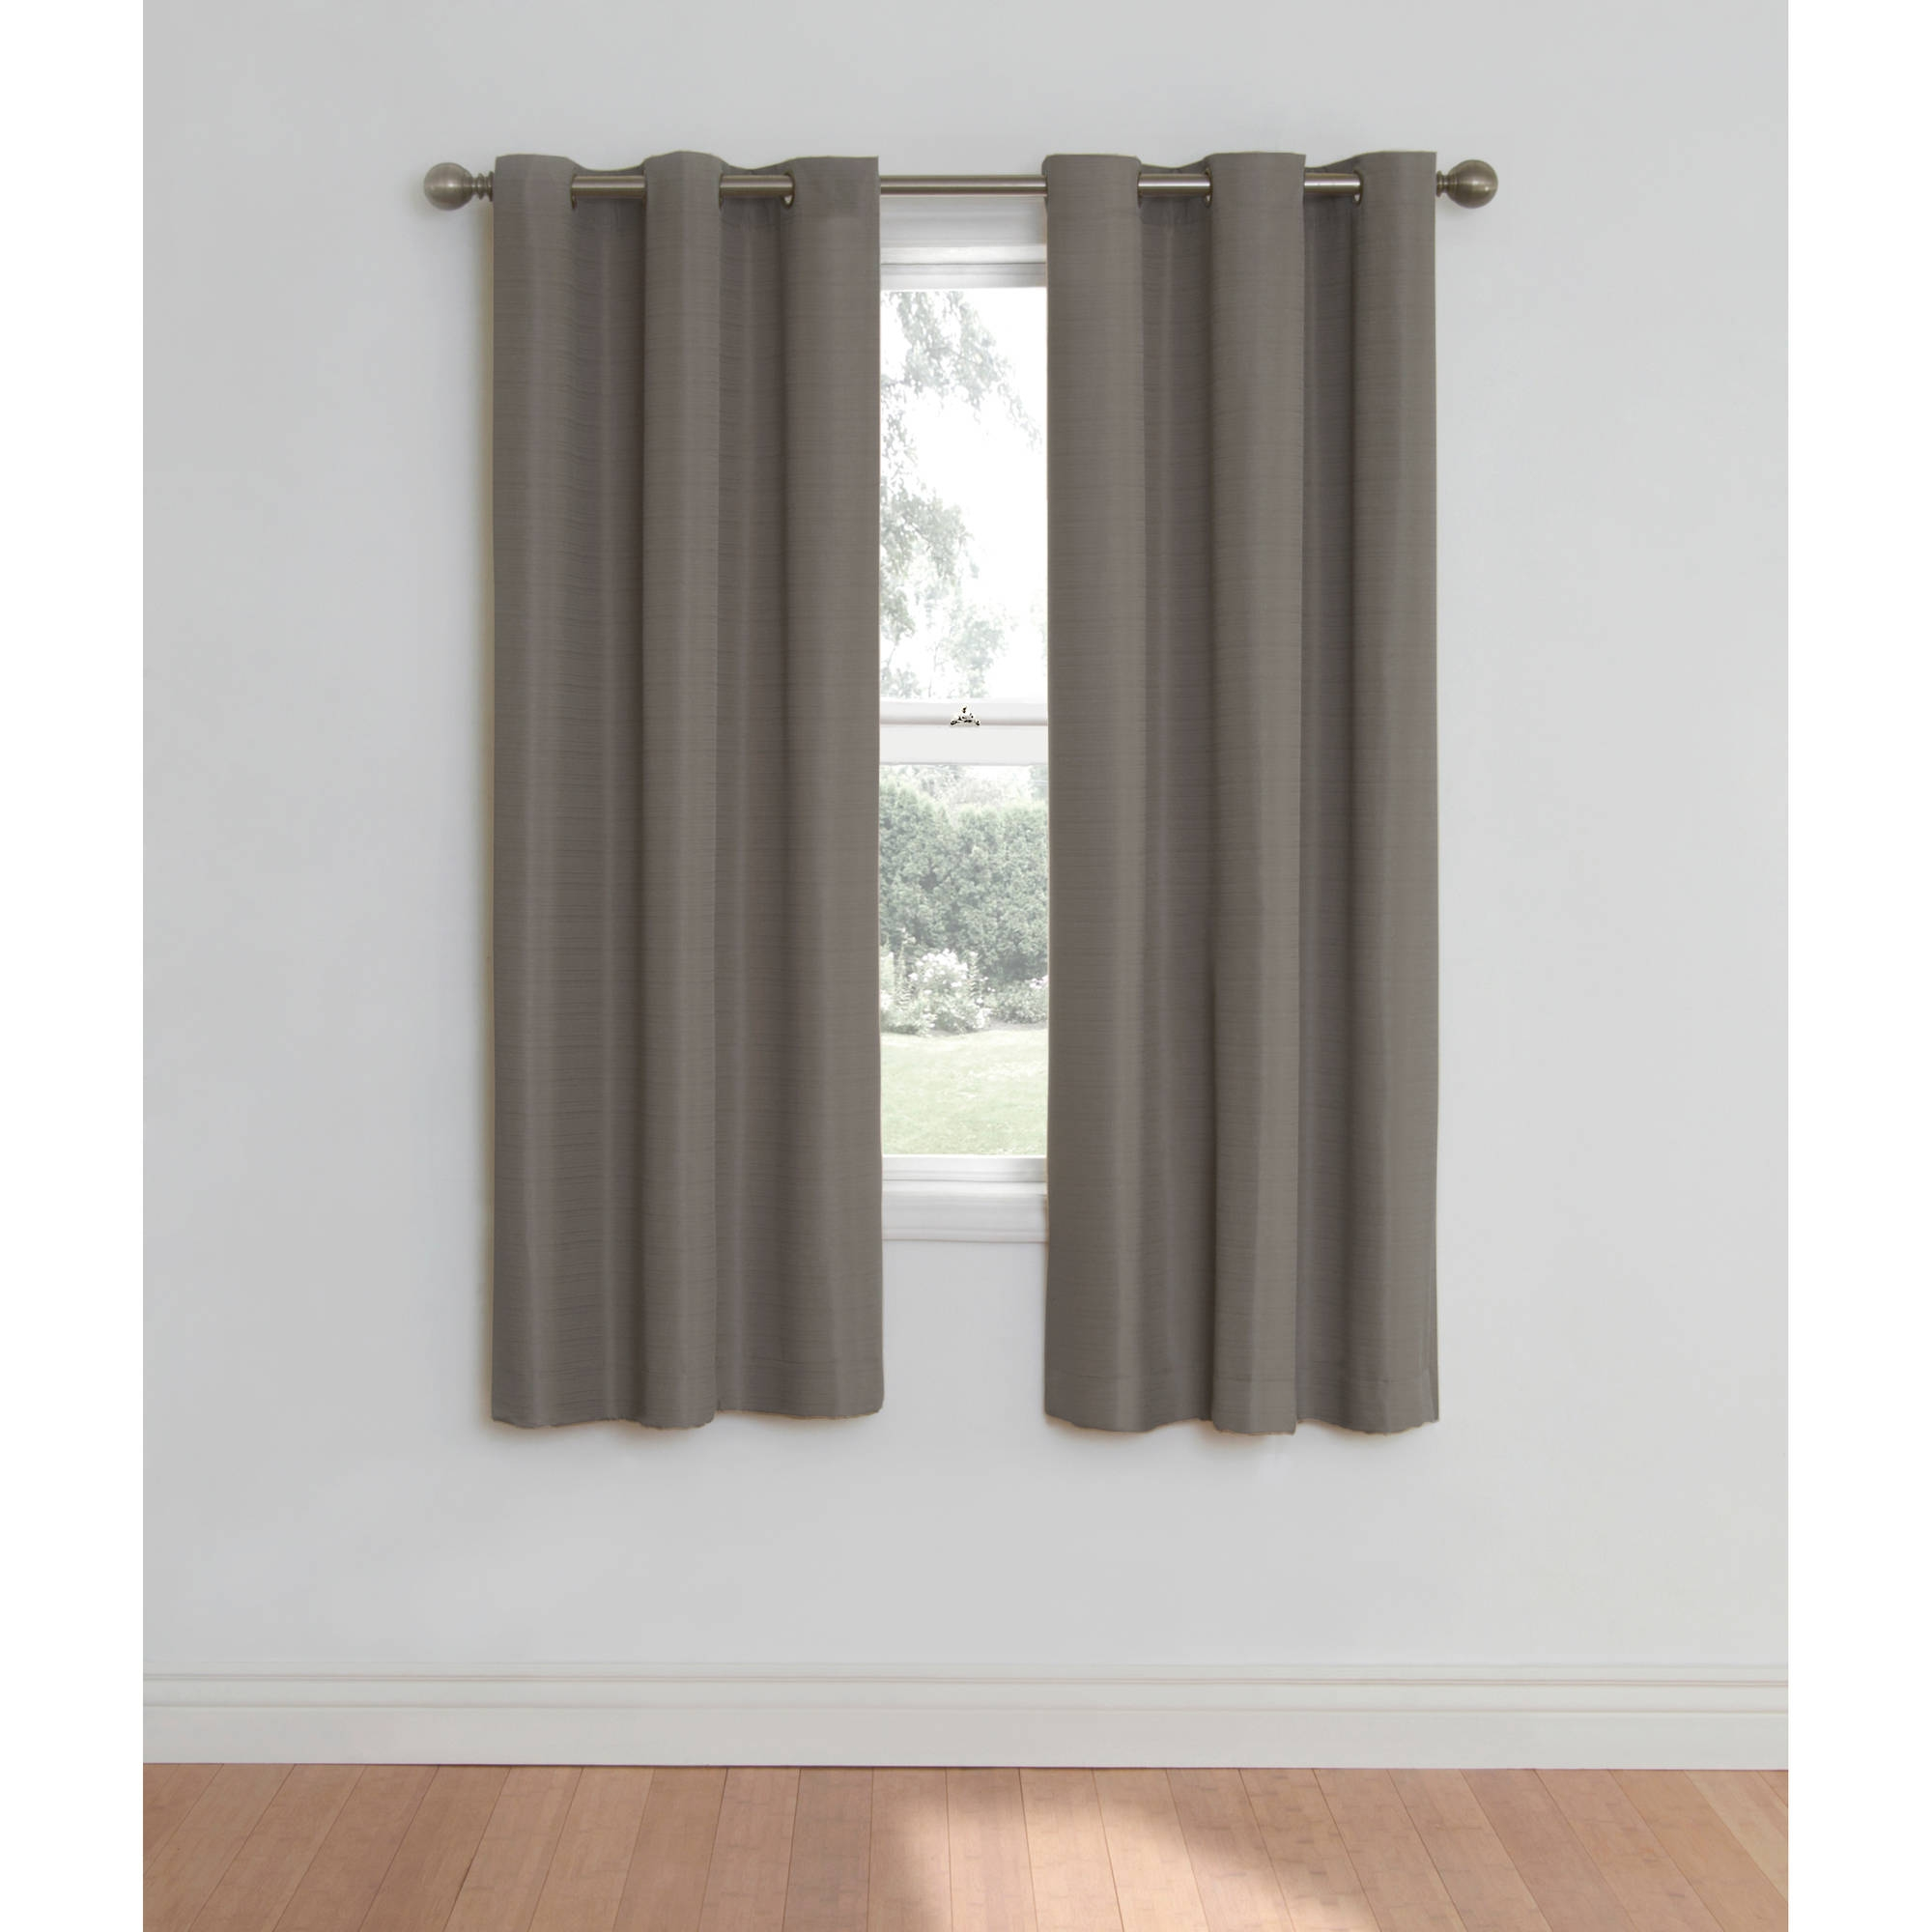 Energy Efficient Thermal Curtains Throughout White Thermal Curtains (Image 8 of 15)